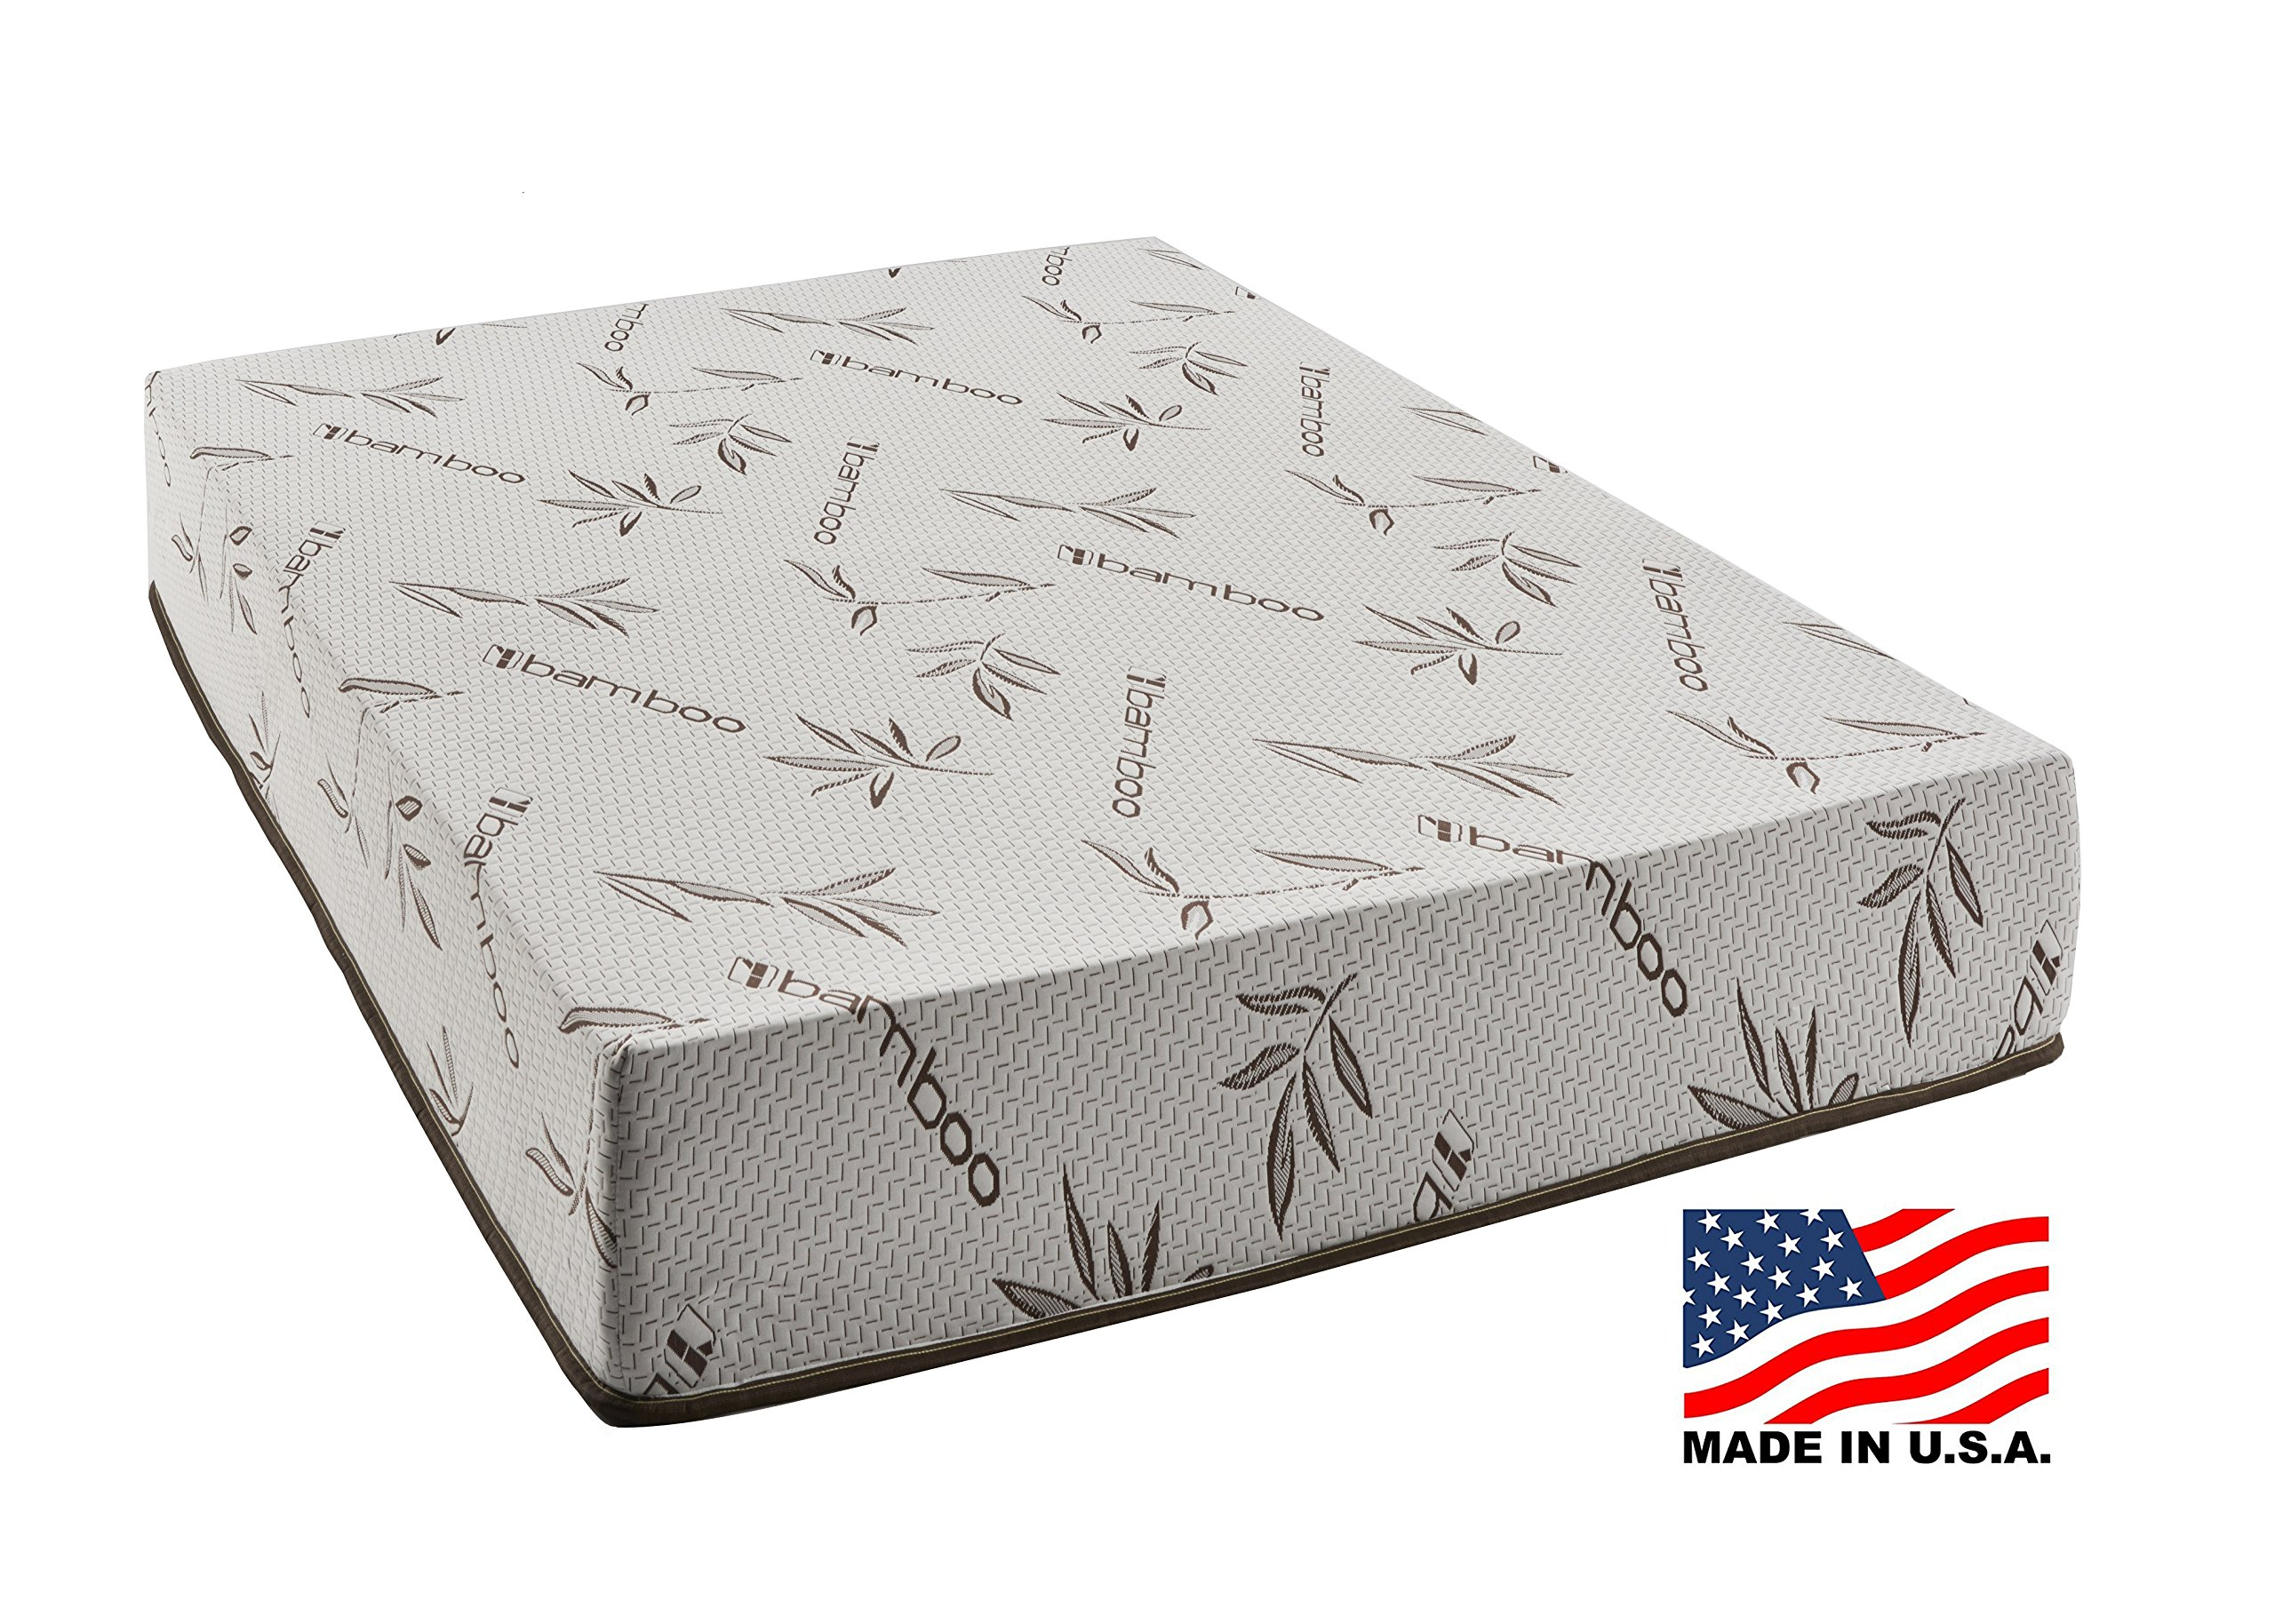 Customize Bed 8 Inch Gel Memory Foam Mattress with Bamboo Cover, King -- CertiPUR-US Certified